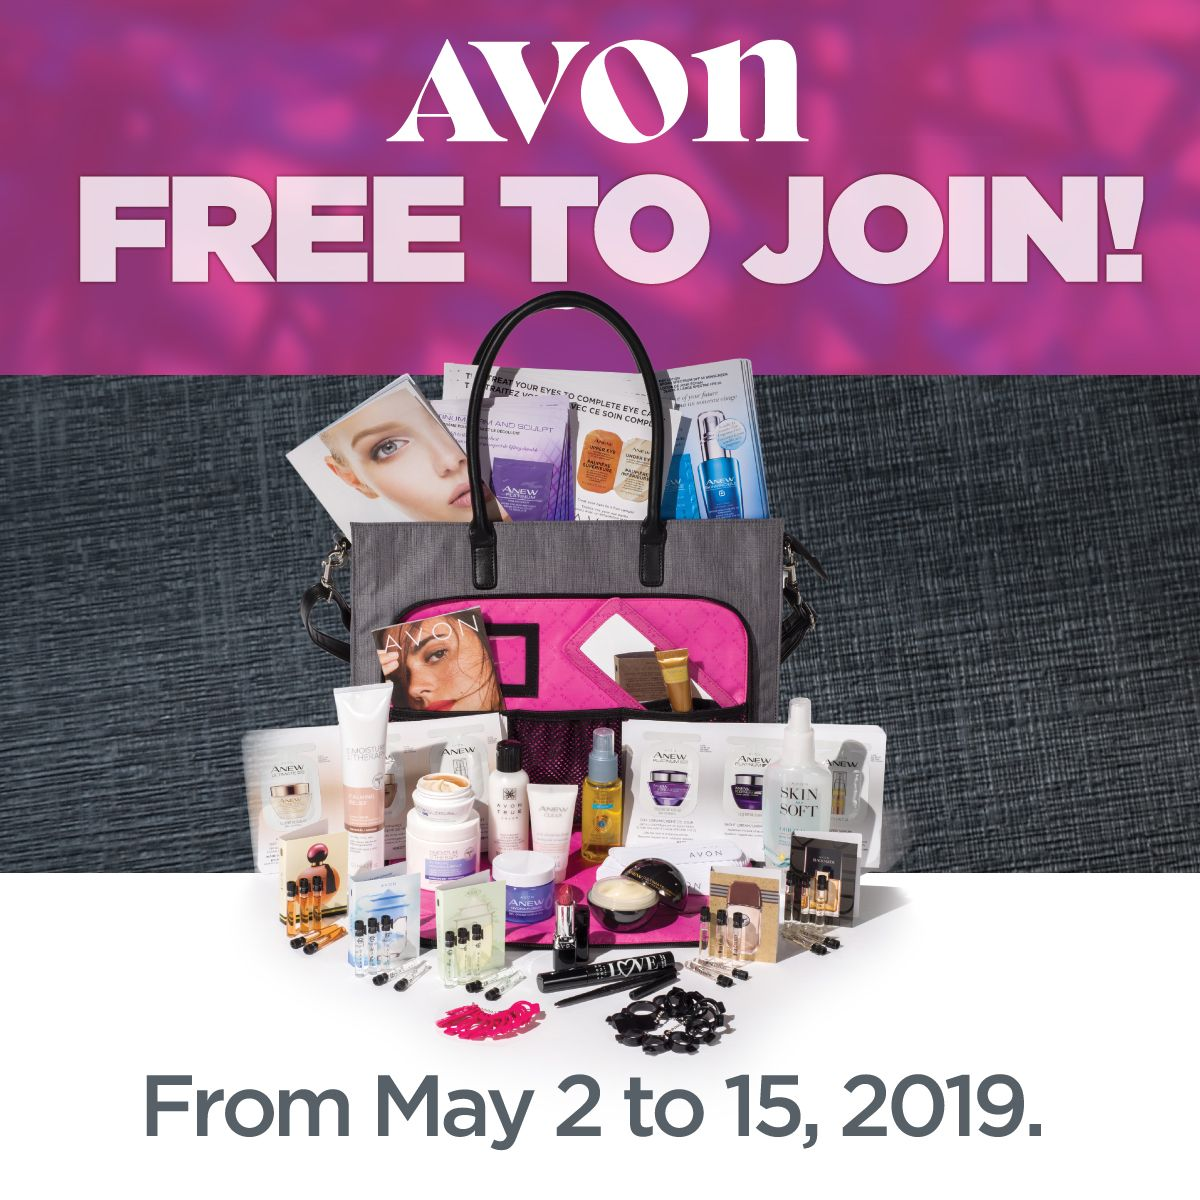 Post image Avon, Avon true, Avon rep